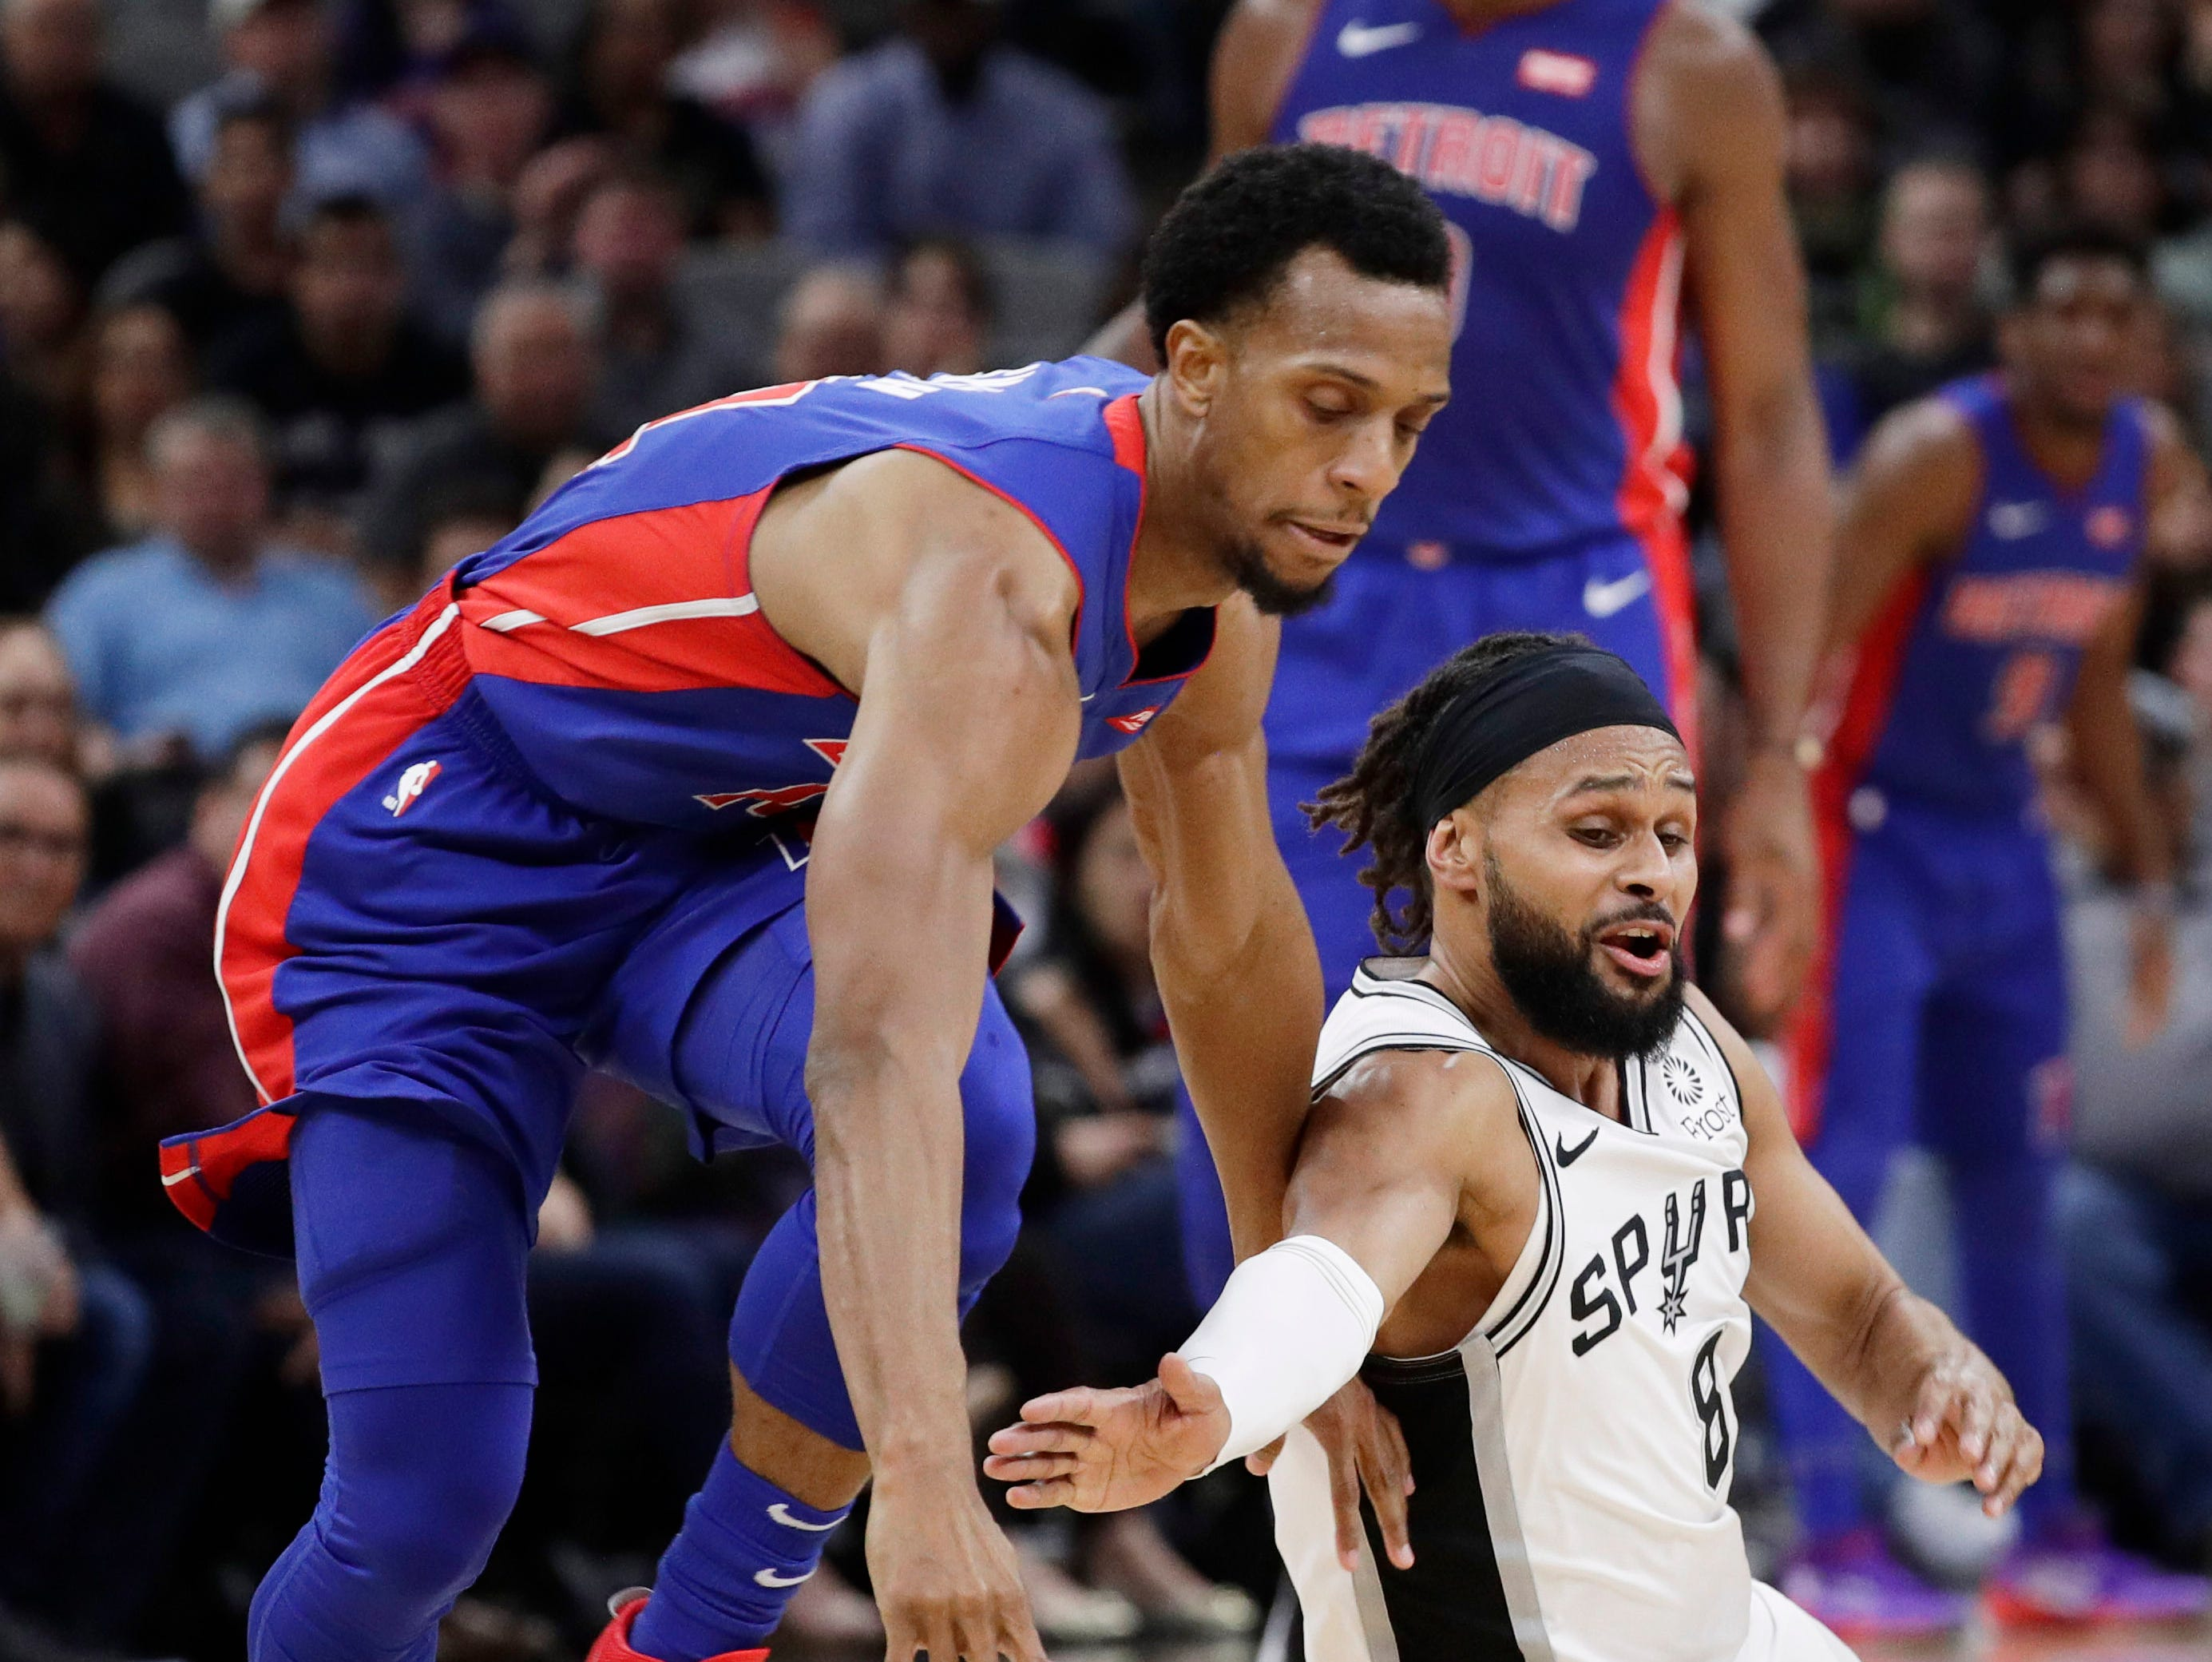 Detroit Pistons guard Ish Smith, left, and San Antonio Spurs guard Patty Mills (8) chase a loose ball during the second half.